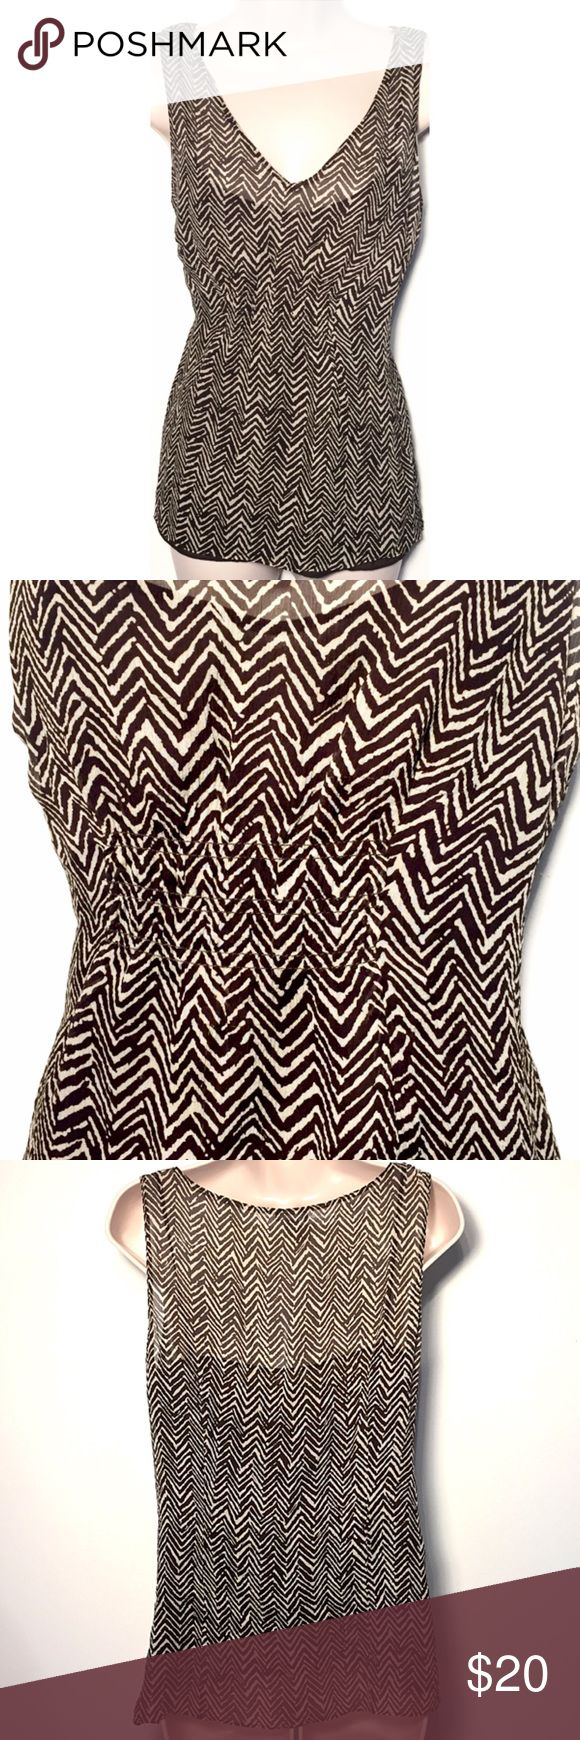 """❣BOGO 1/2 off❣Ann Taylor silk chevron sleeveless Flawless condition. Freshly dry cleaned. Built-in sheer brown camisole. Elastic under bust. Material has slight stretch. Side zip closure. Size 10. Approx 25"""" long & 19"""" flat across chest. ✖️I do NOT MODEL✖️ 🔴Bundle to save! 🔴NO TRADES. 🔴REASONABLE offers welcome via offer button. Ann Taylor Tops Tank Tops"""